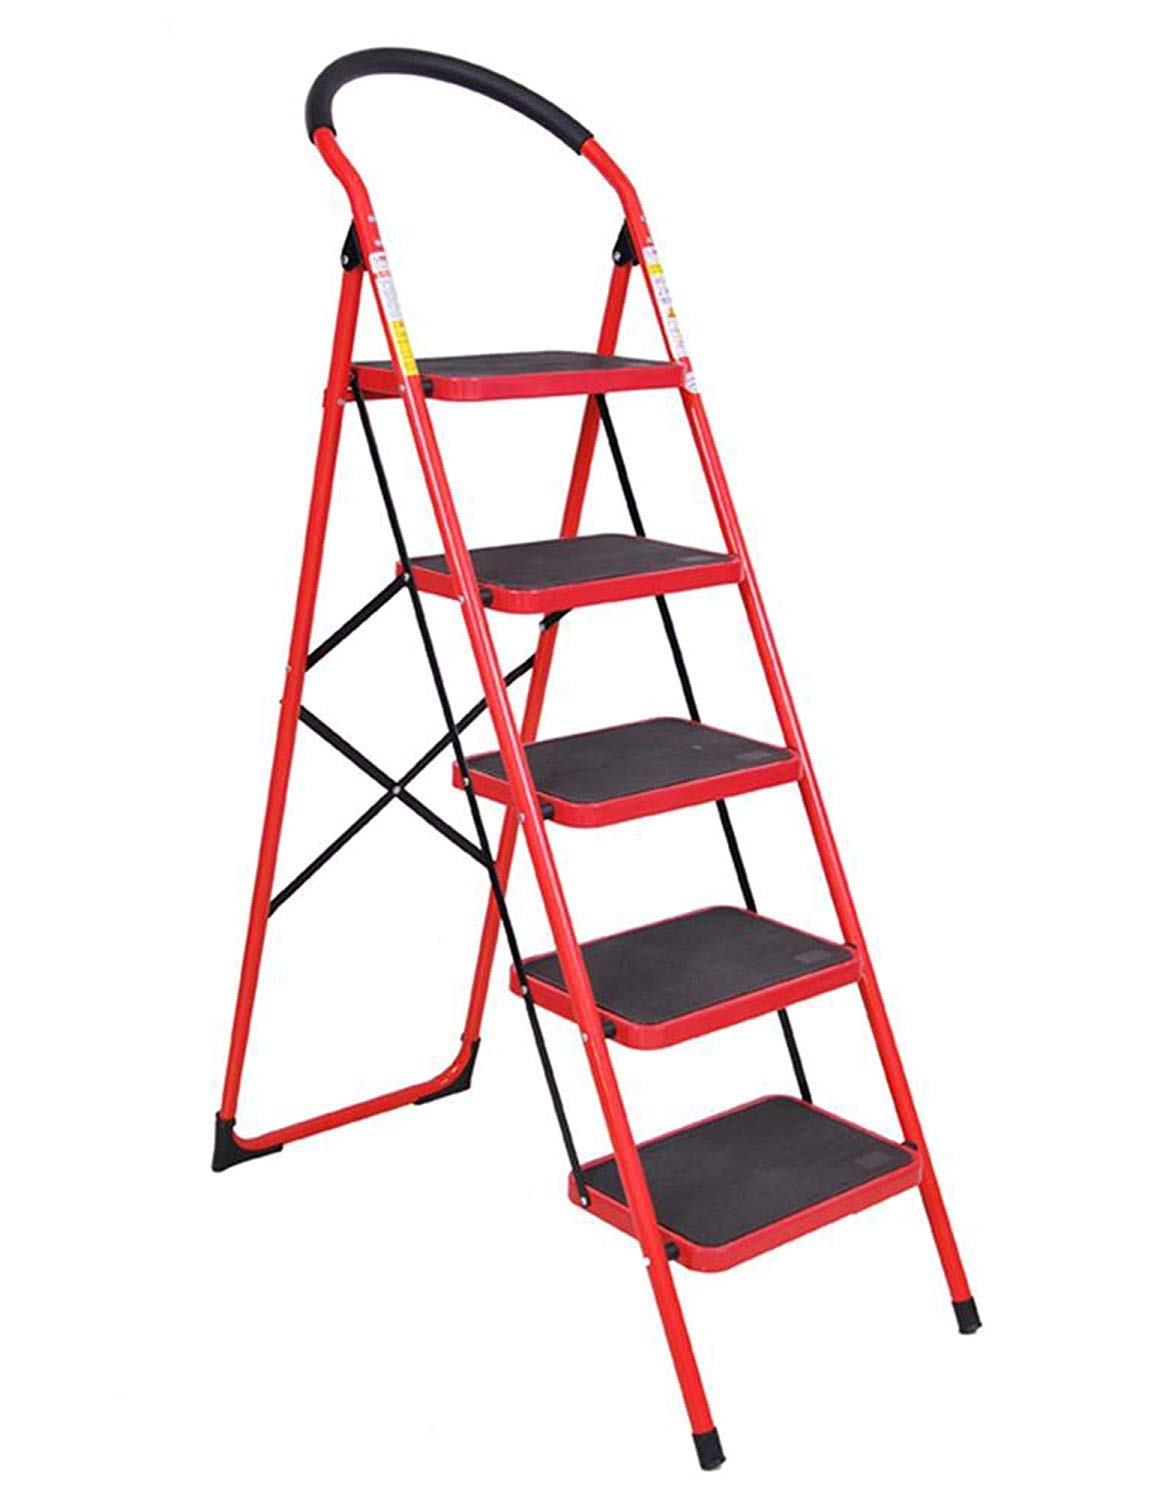 Gabz All-Purpose User-Friendly Step Ladder Red with Hand Grip Indoor//Outdoor Portable Household Stepstool//Seat 3 Steps